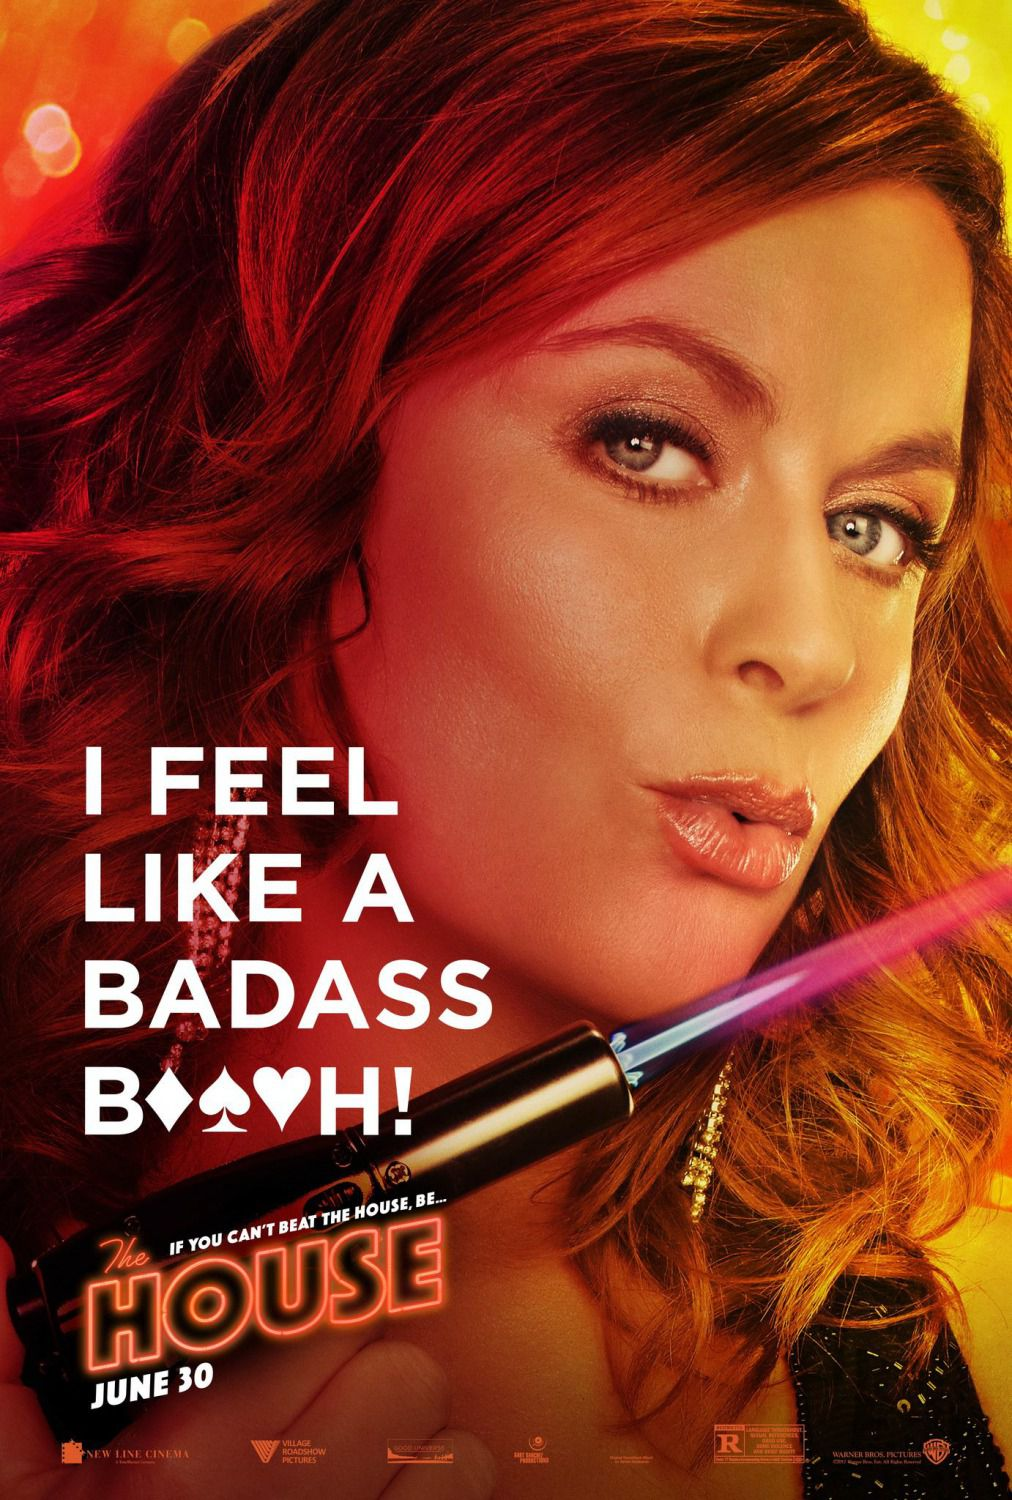 The House - film comedy poster - Amy Poehler - I feel like a Badass beach